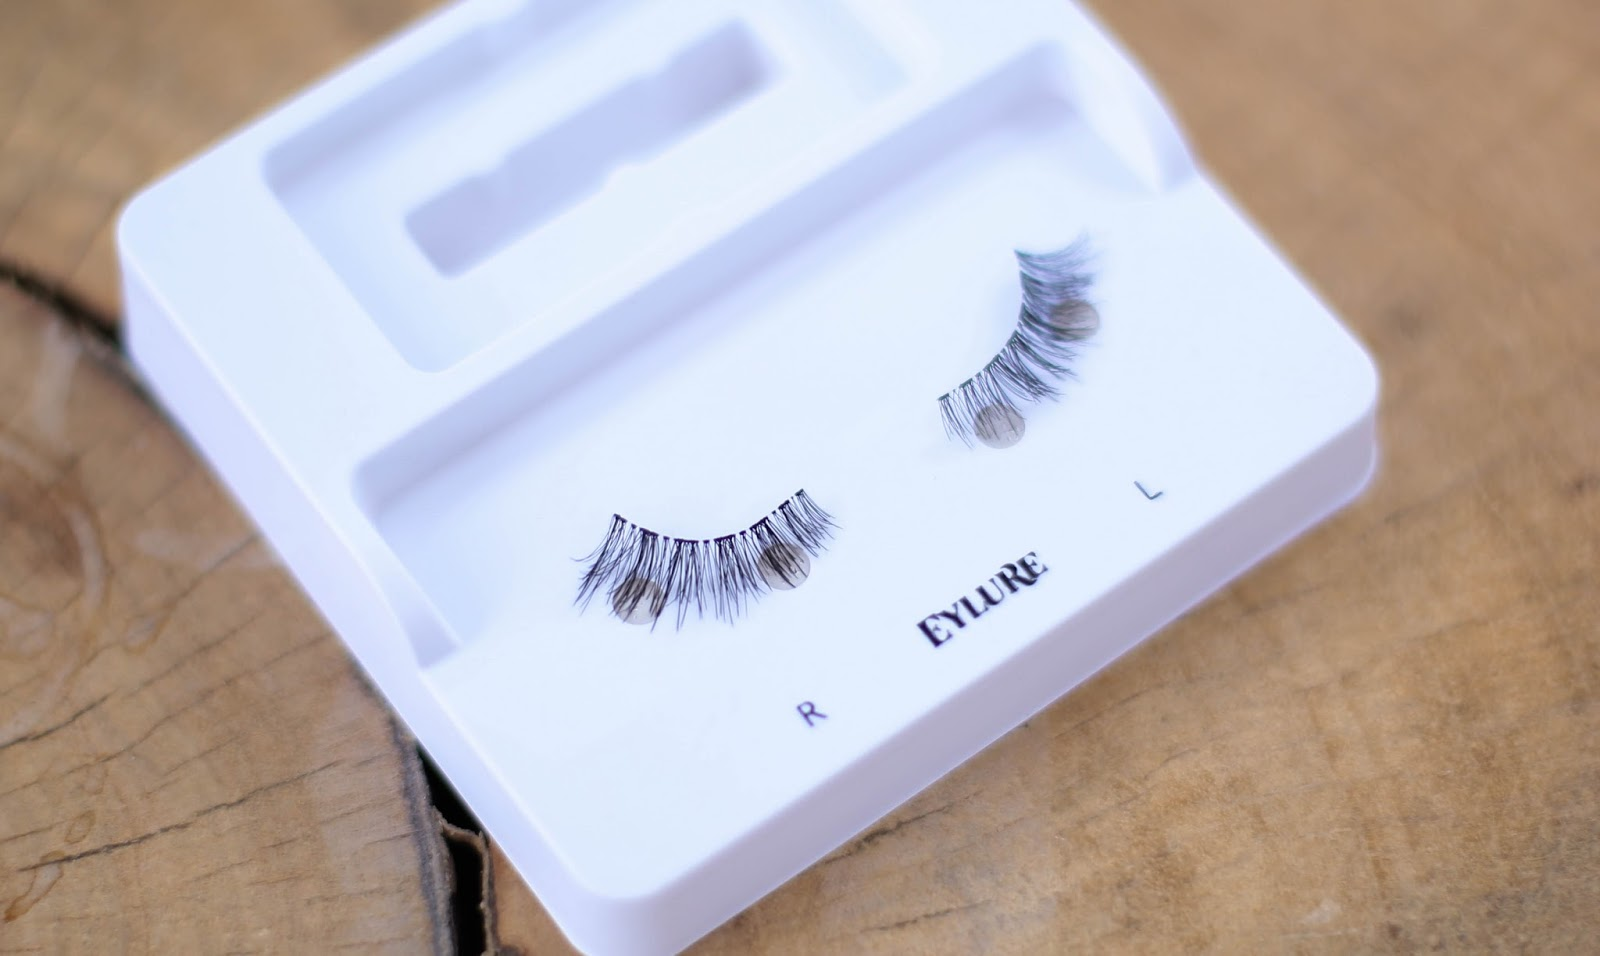 39218f3f67a The second new design is called 'Fully Fleur' and these are a full strip  lash with a similar, natural texture and slight criss-cross design that  Fleur Loves ...